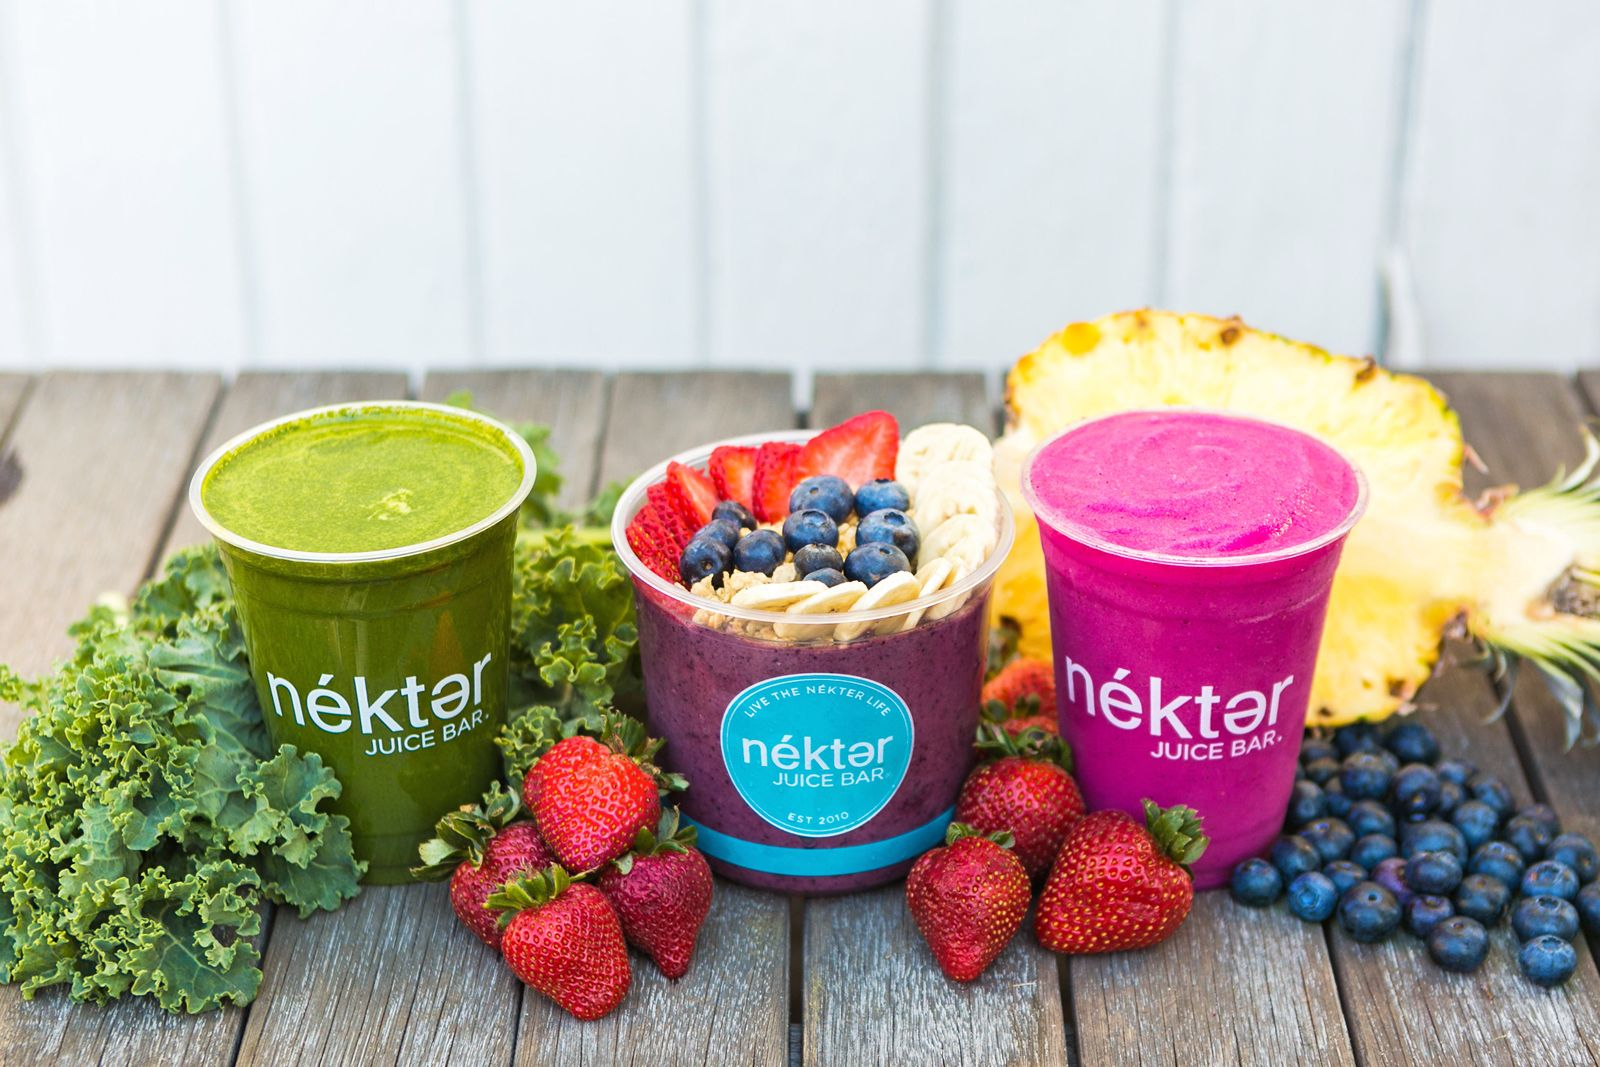 Nékter Juice Bar Accelerates Nationwide Expansion, Brings Home Three Major Awards